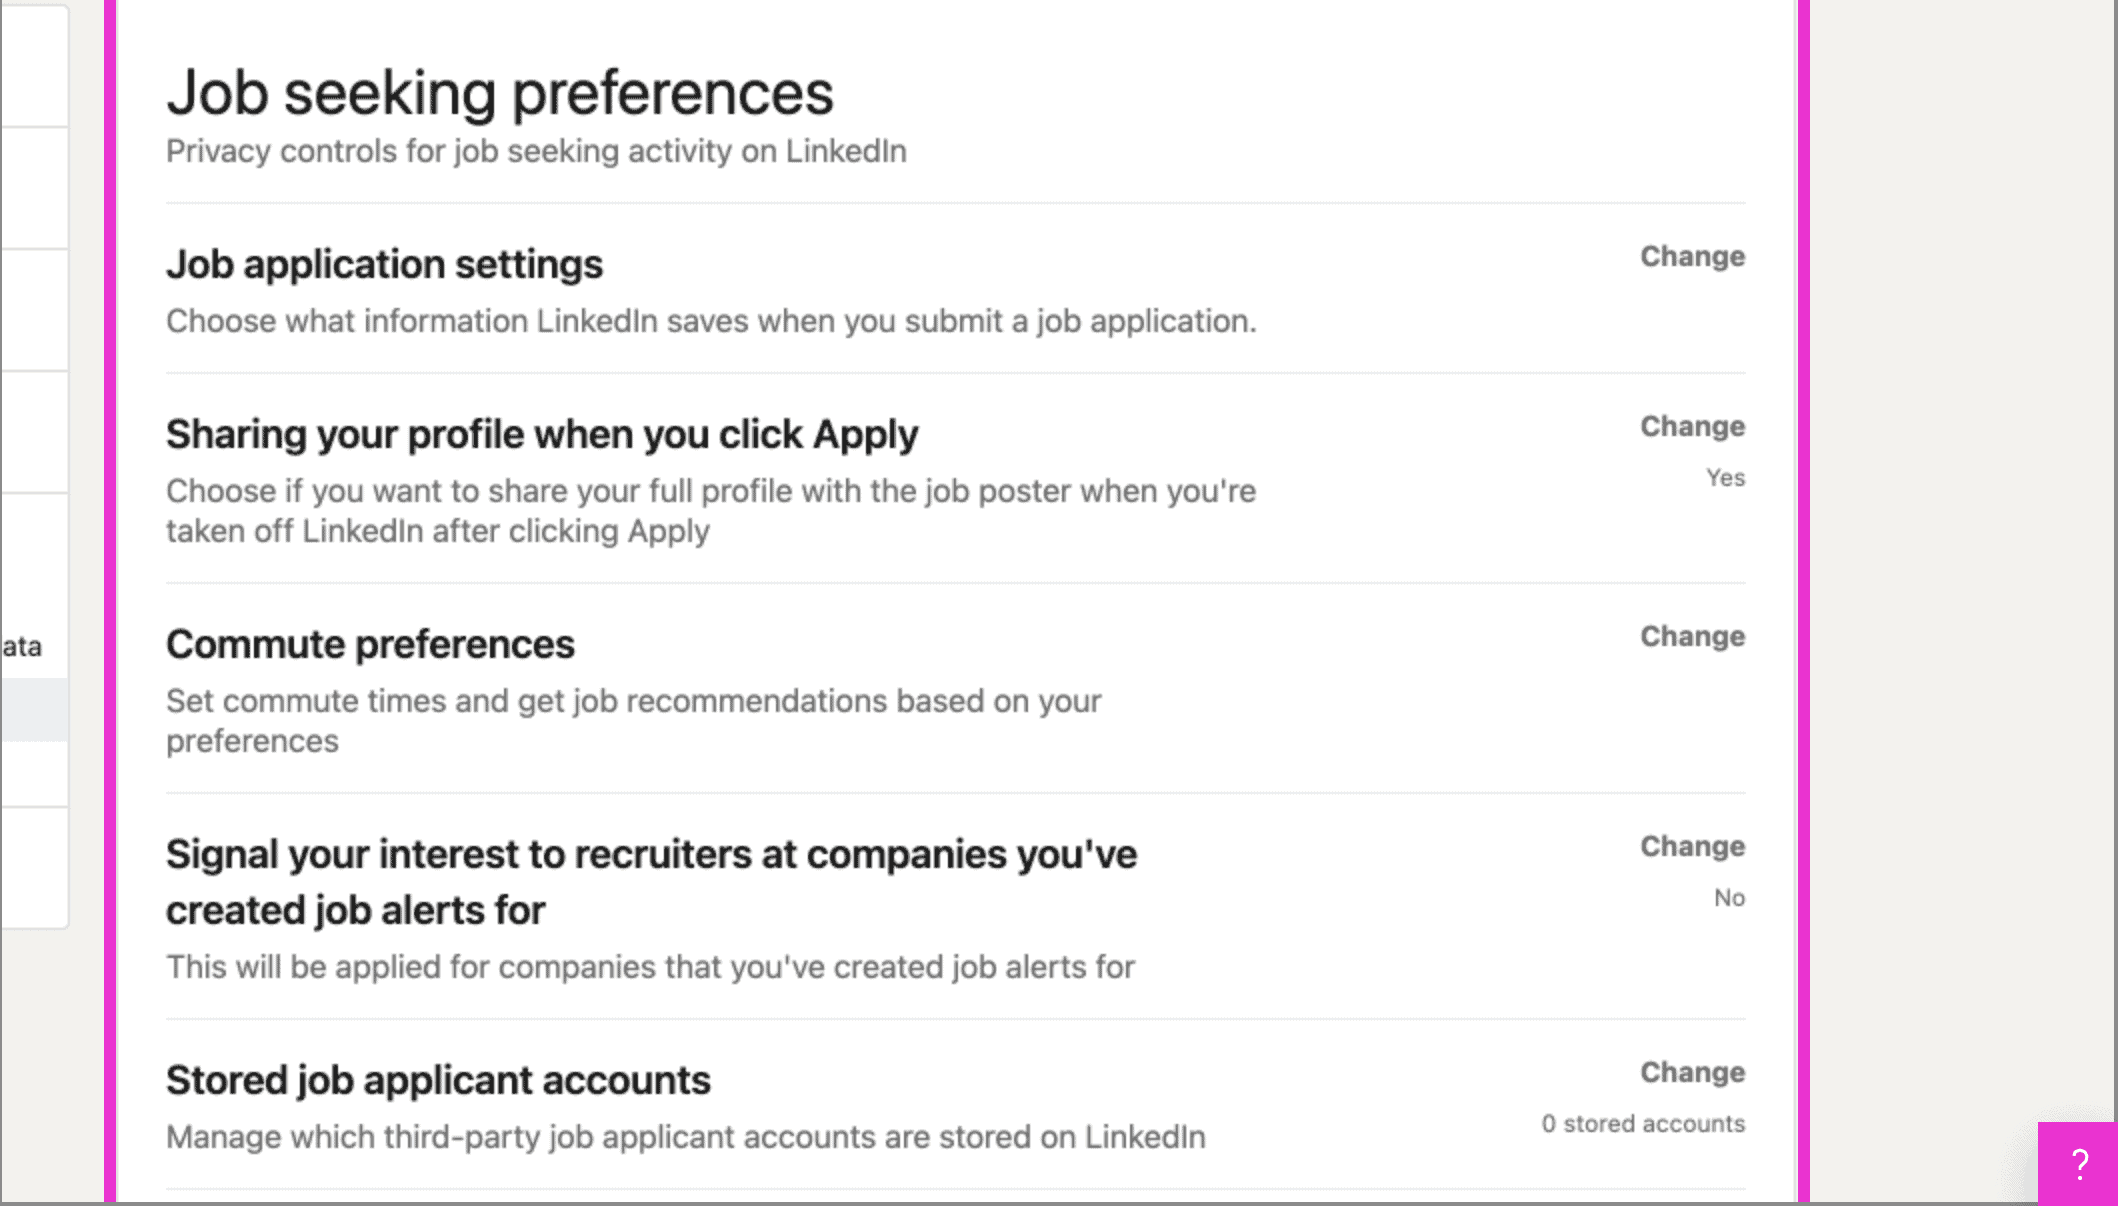 How to Edit Your Job Seeking Preferences on LinkedIn